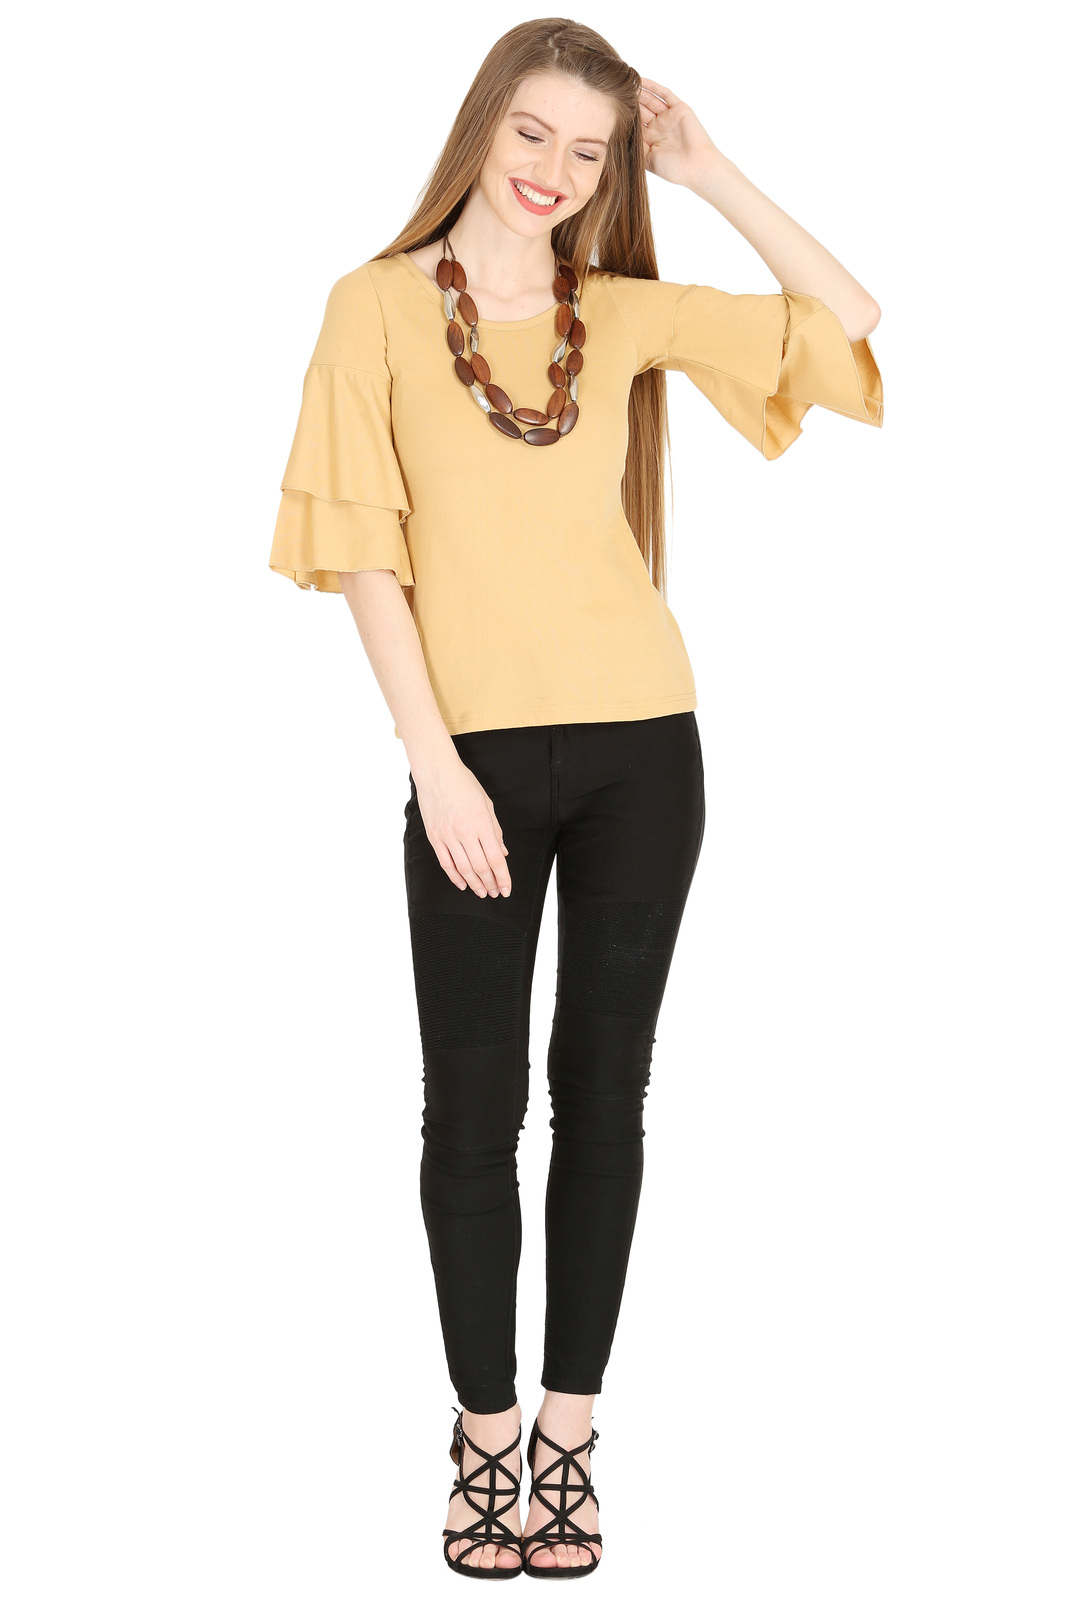 Tops for Women Beige Cotton Ruffle Bell Sleeves tops Chistmas gifts for her